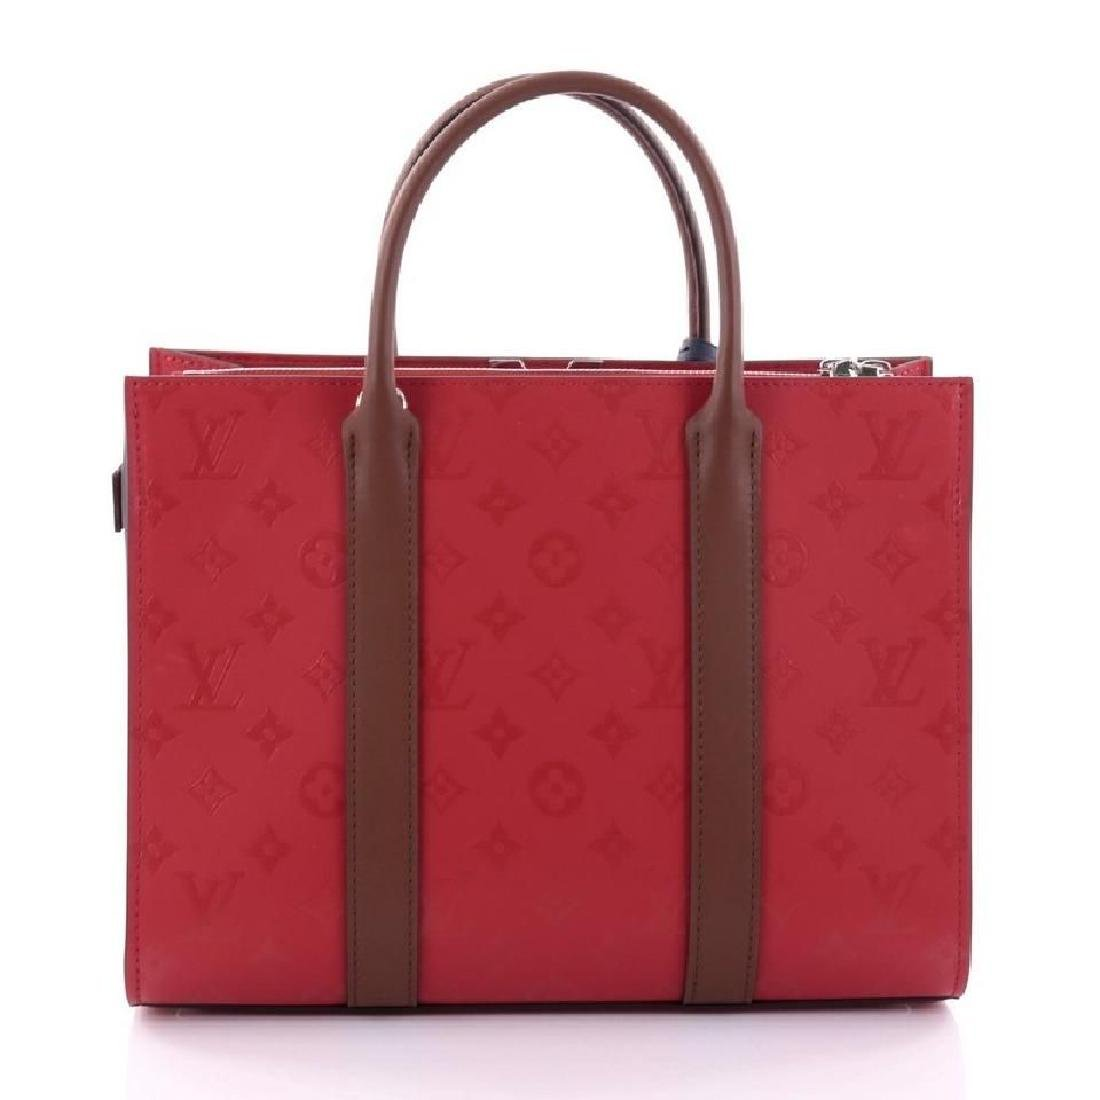 Authentic Louis Vuitton Very Tote Red Monogram Leather - 3